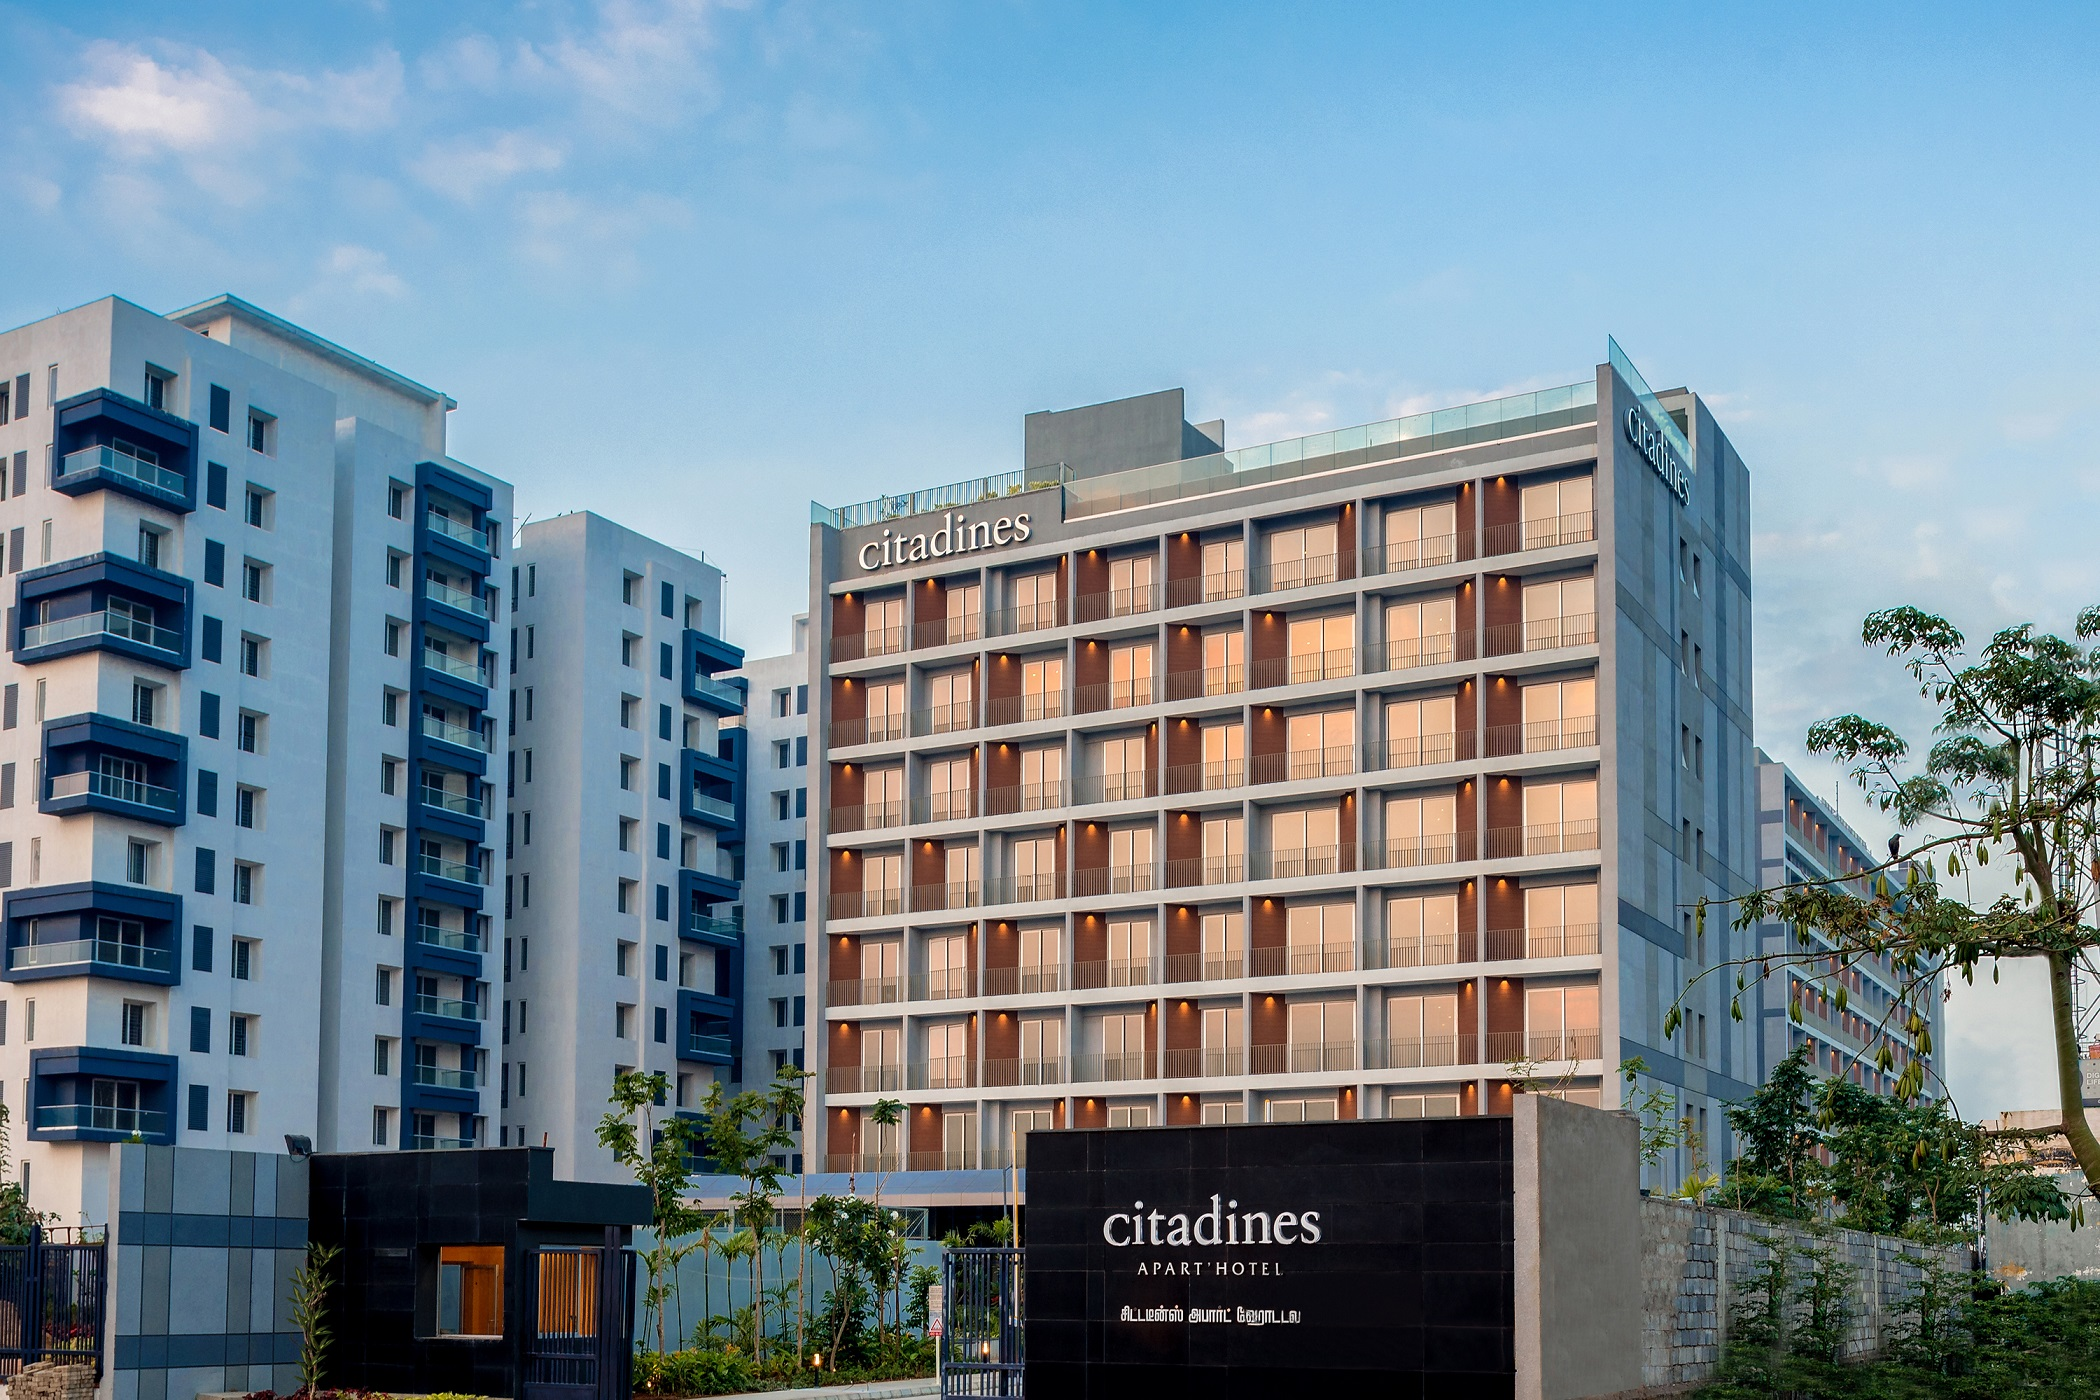 Ascott opens citadines apart hotel in one of india s for Apart hotel citadines